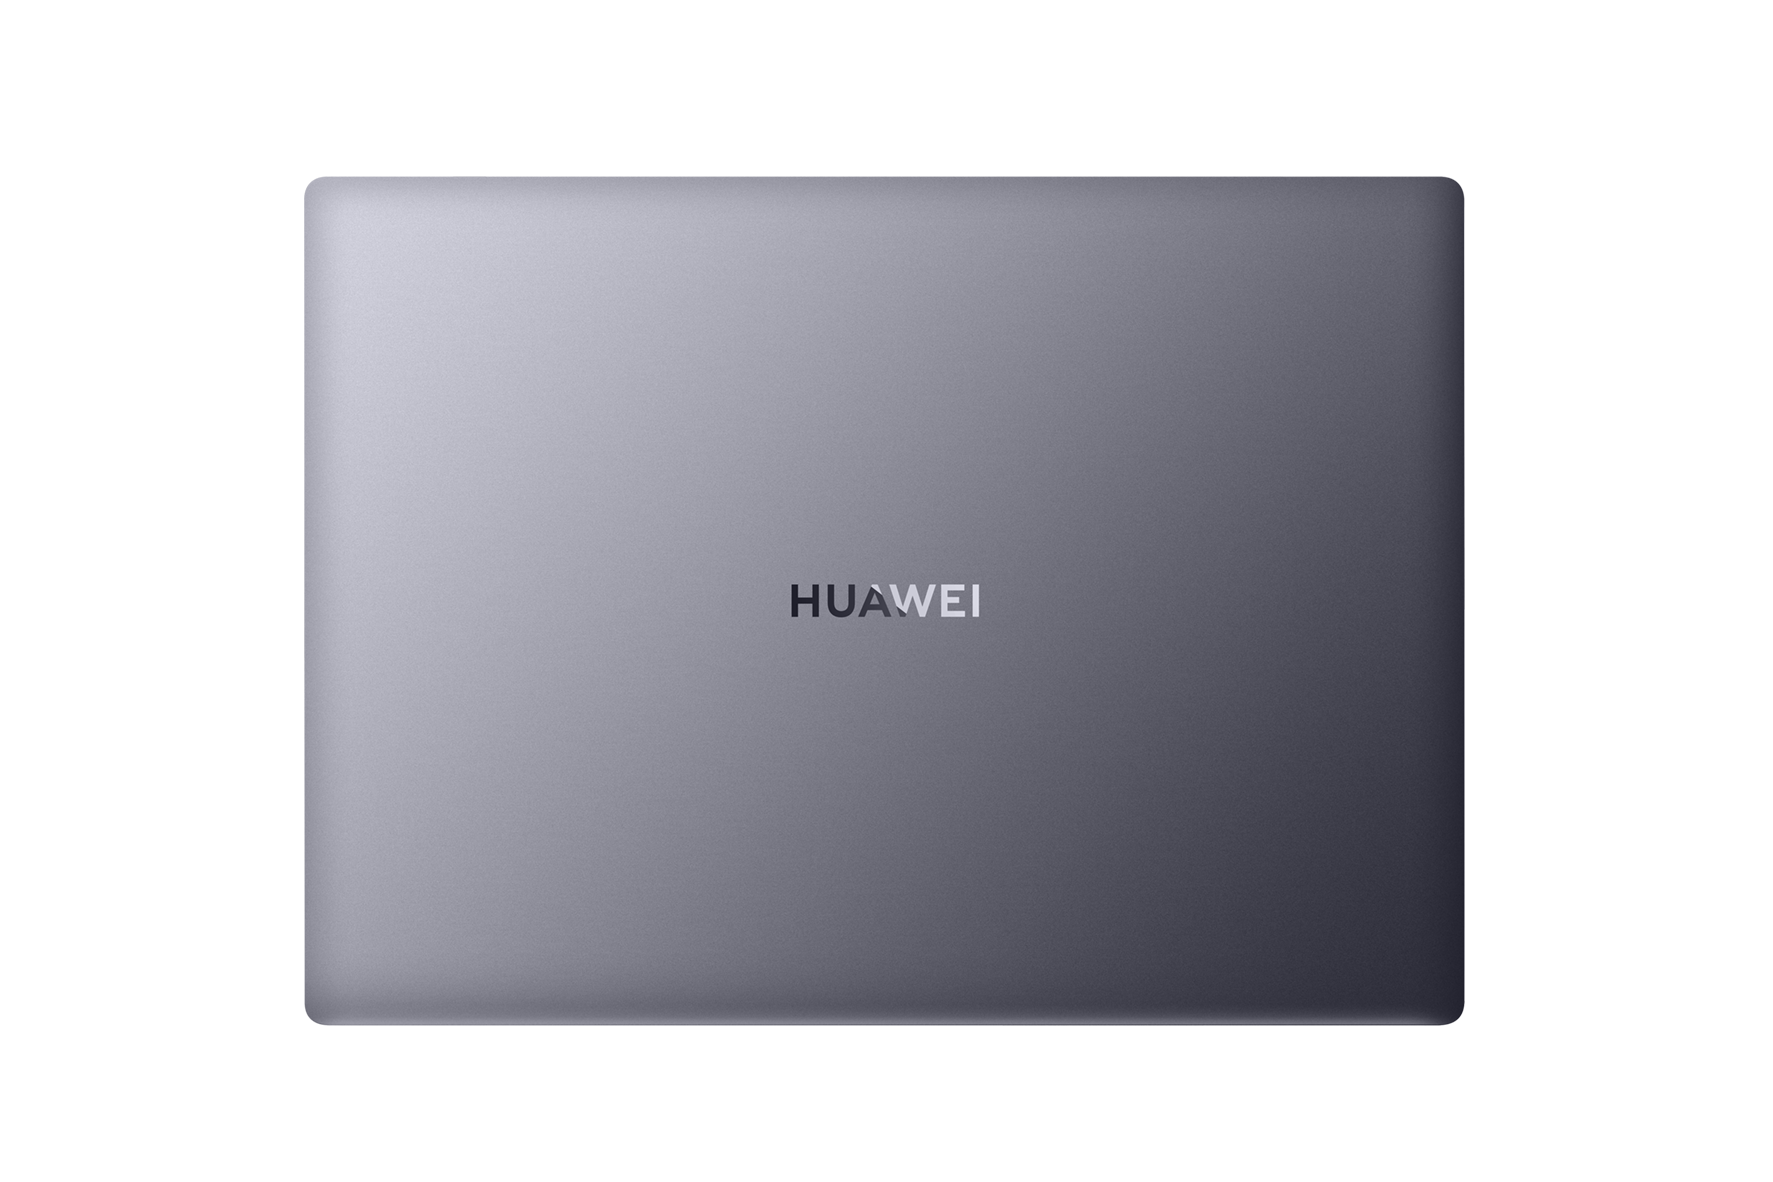 The New Huawei MateBook 14